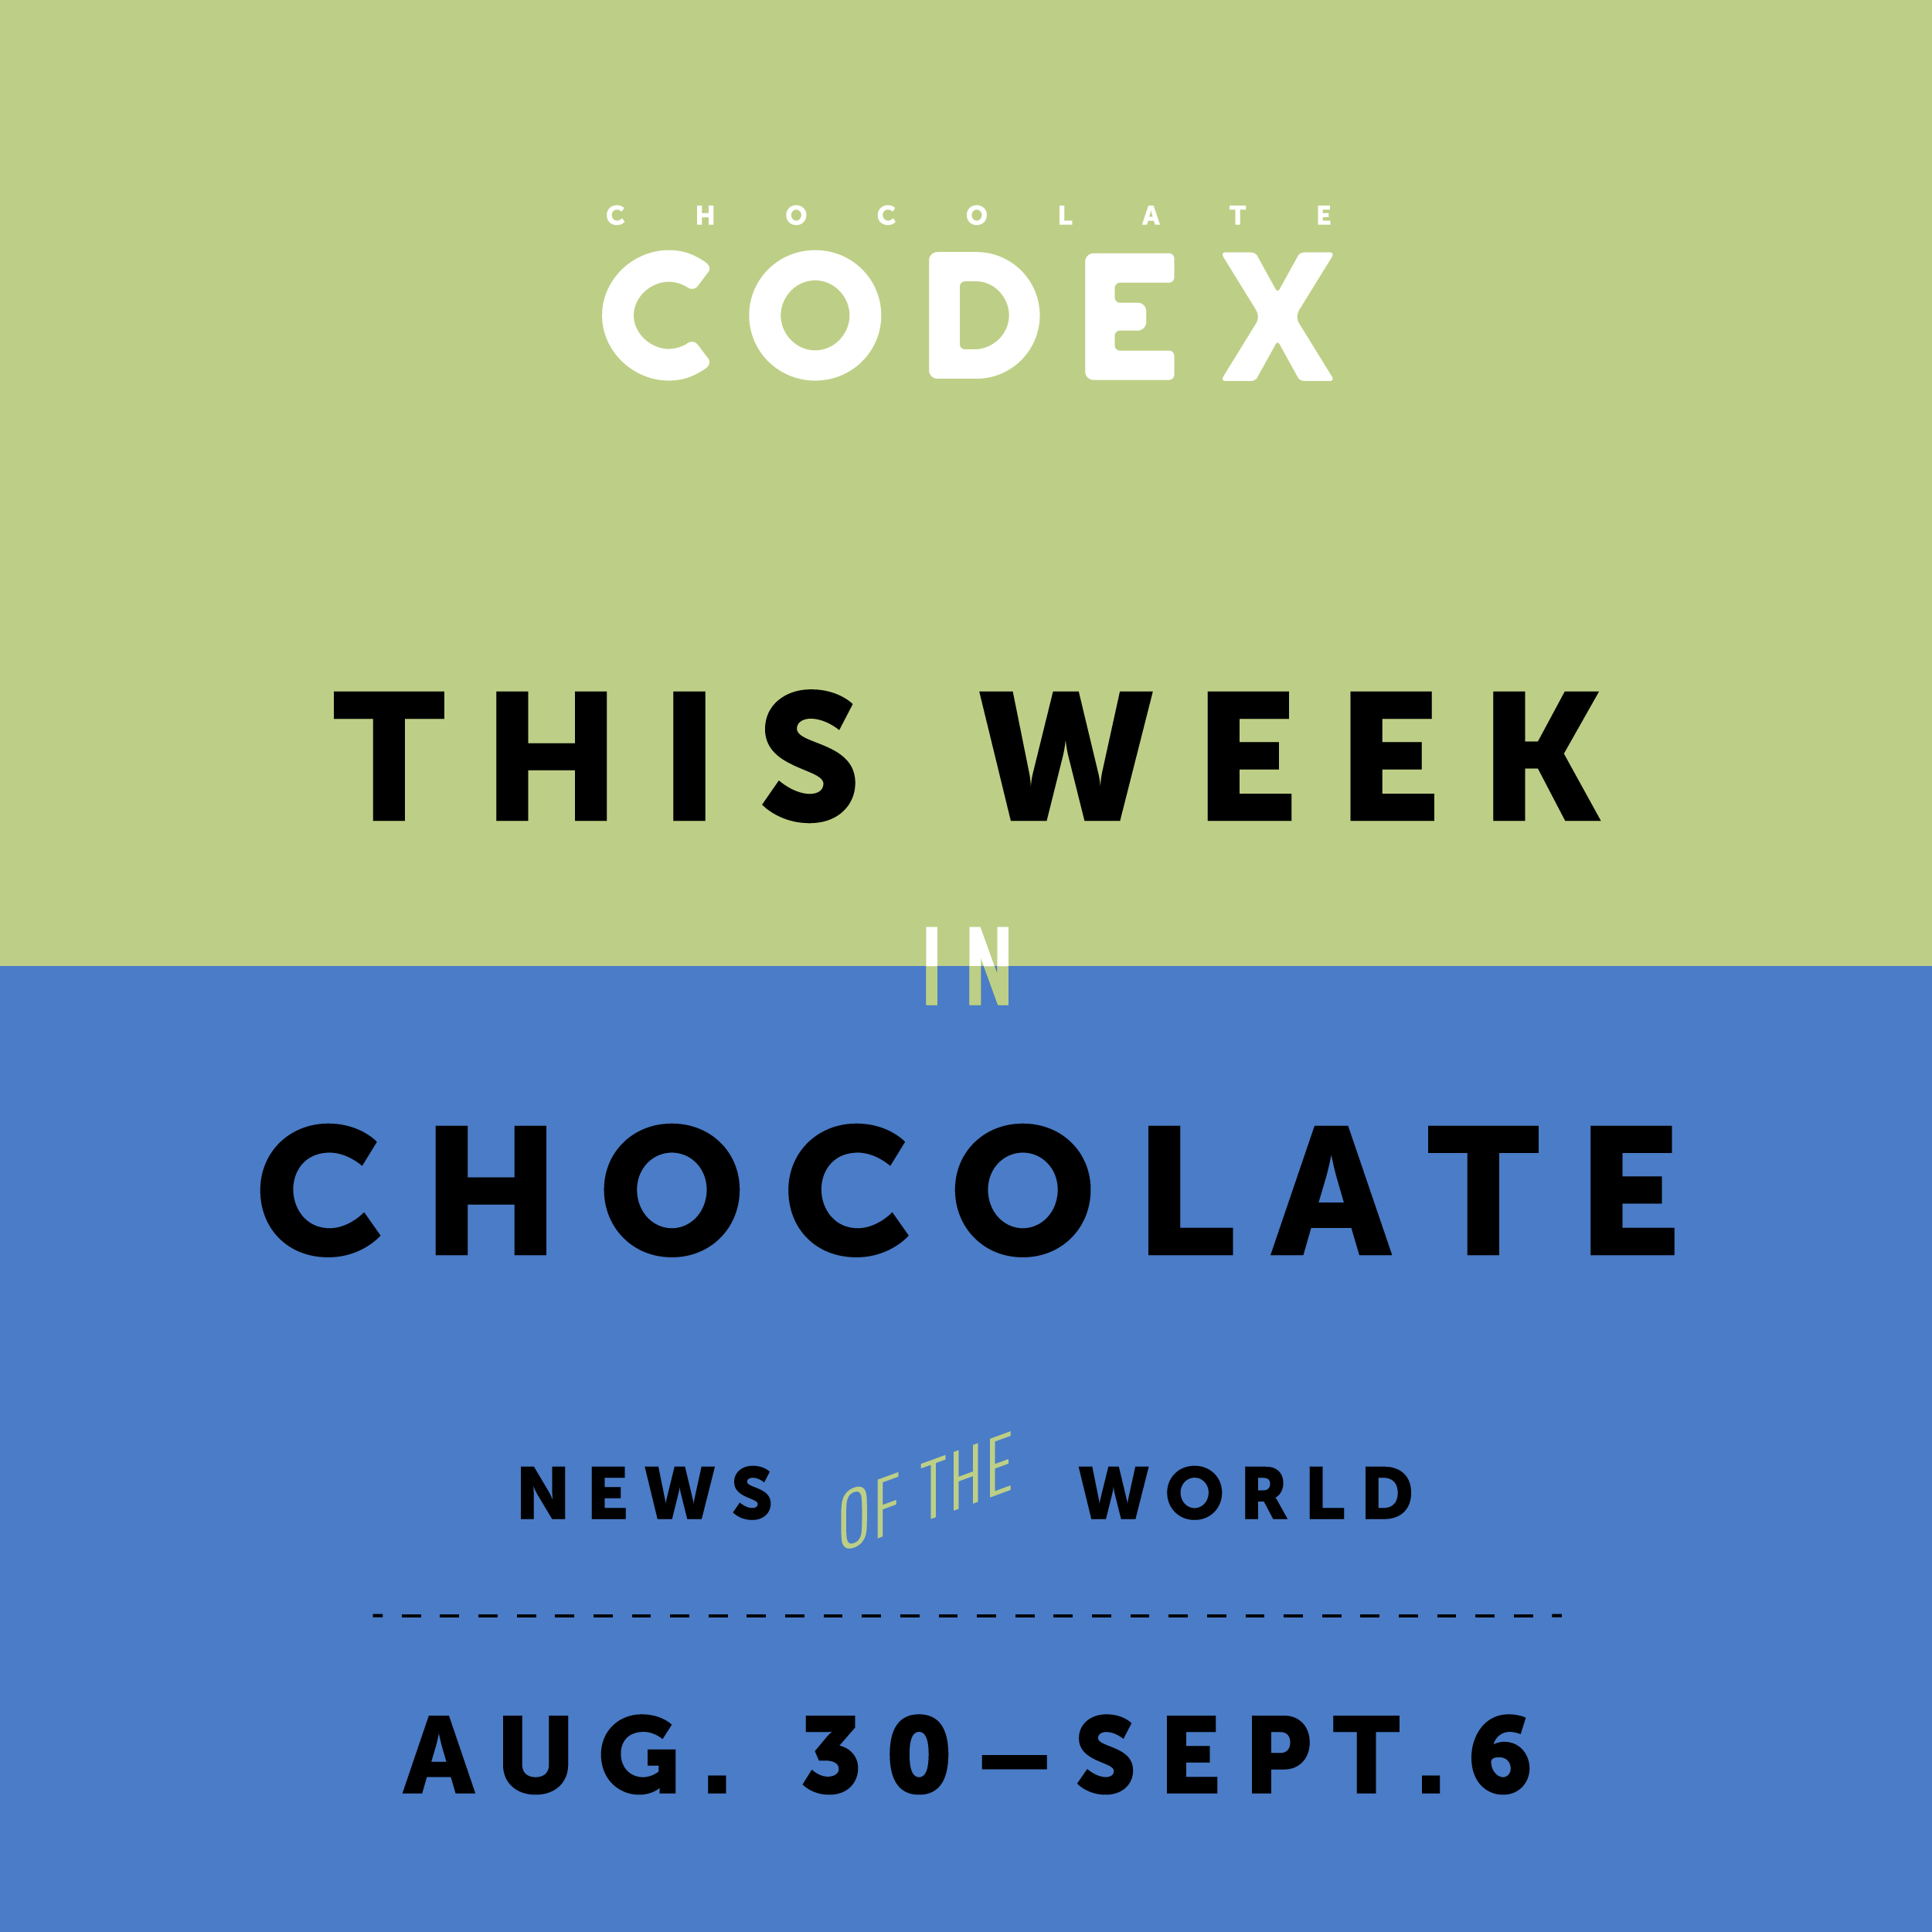 ChocolateCodex_ThisWeek_Chocolate_News_Week36-01